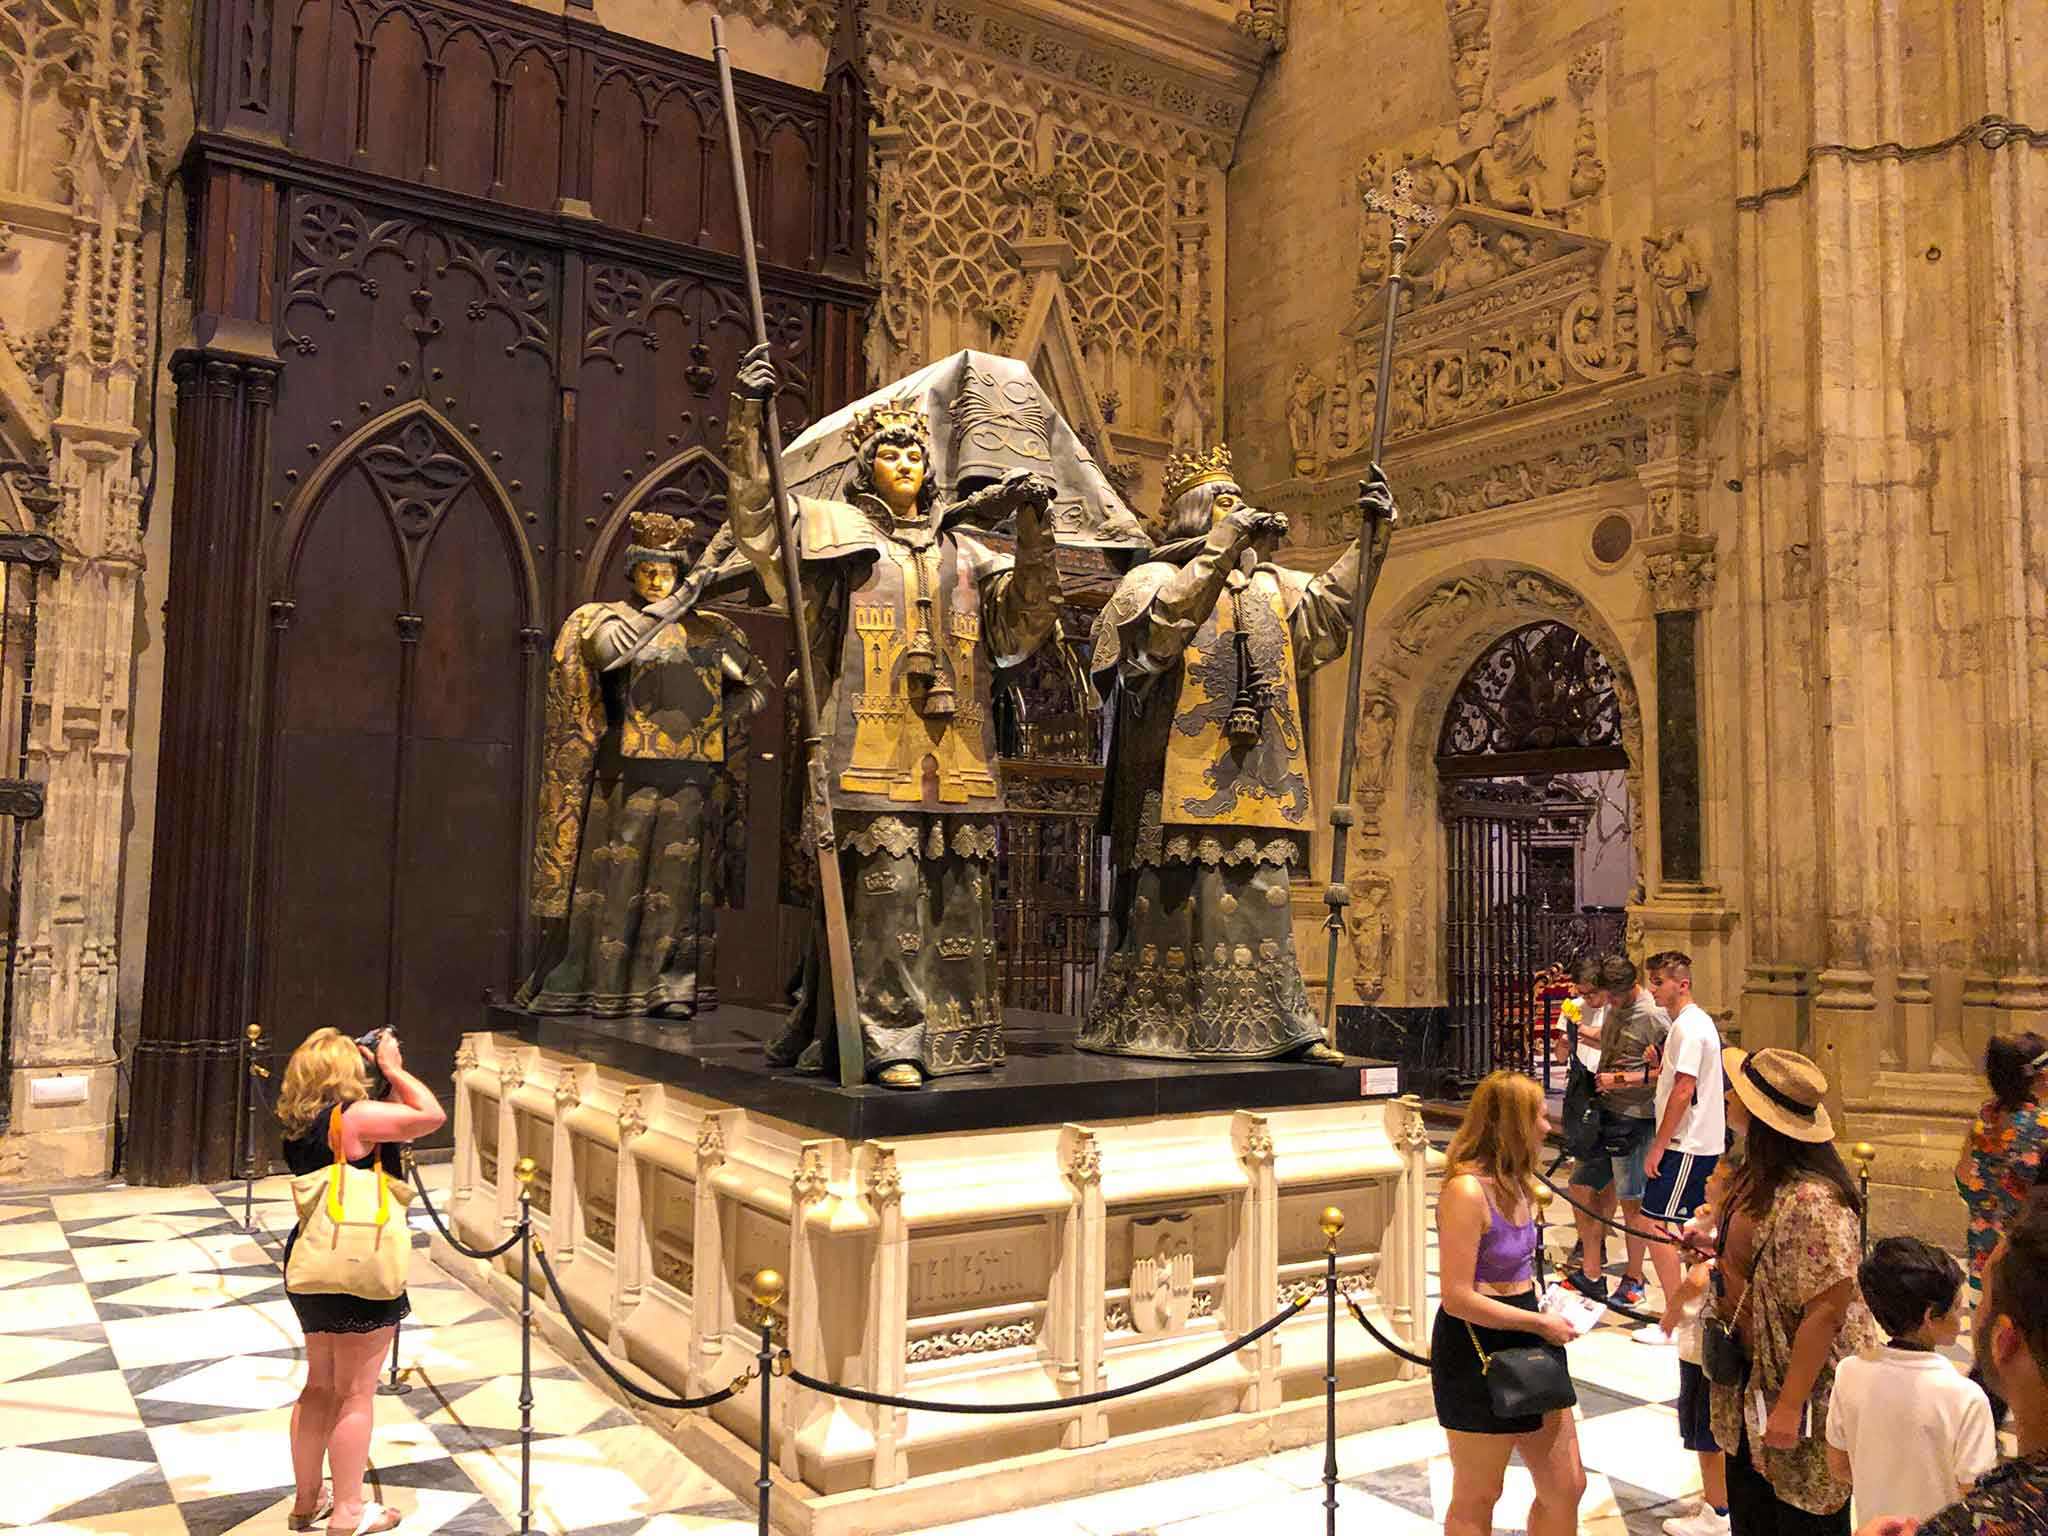 Christopher Columbus Cemetery in Sevilla Cathedral.